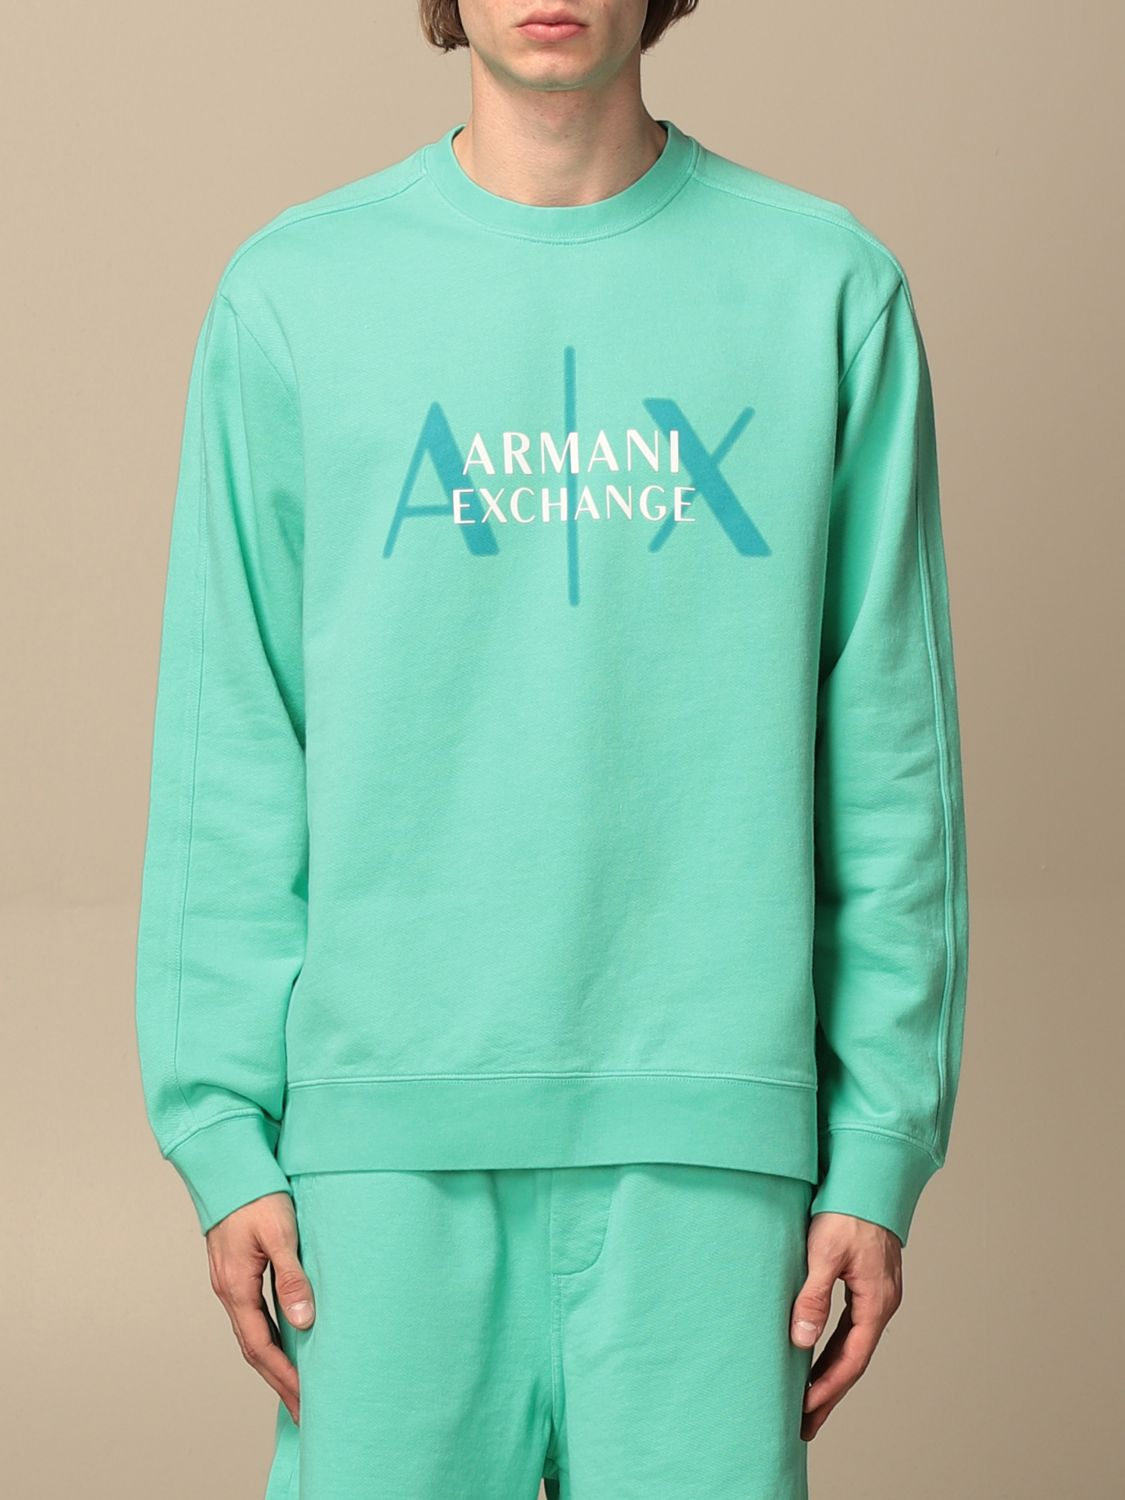 Sweatshirt Armani Exchange: Sweatshirt men Armani Exchange multicolor 1